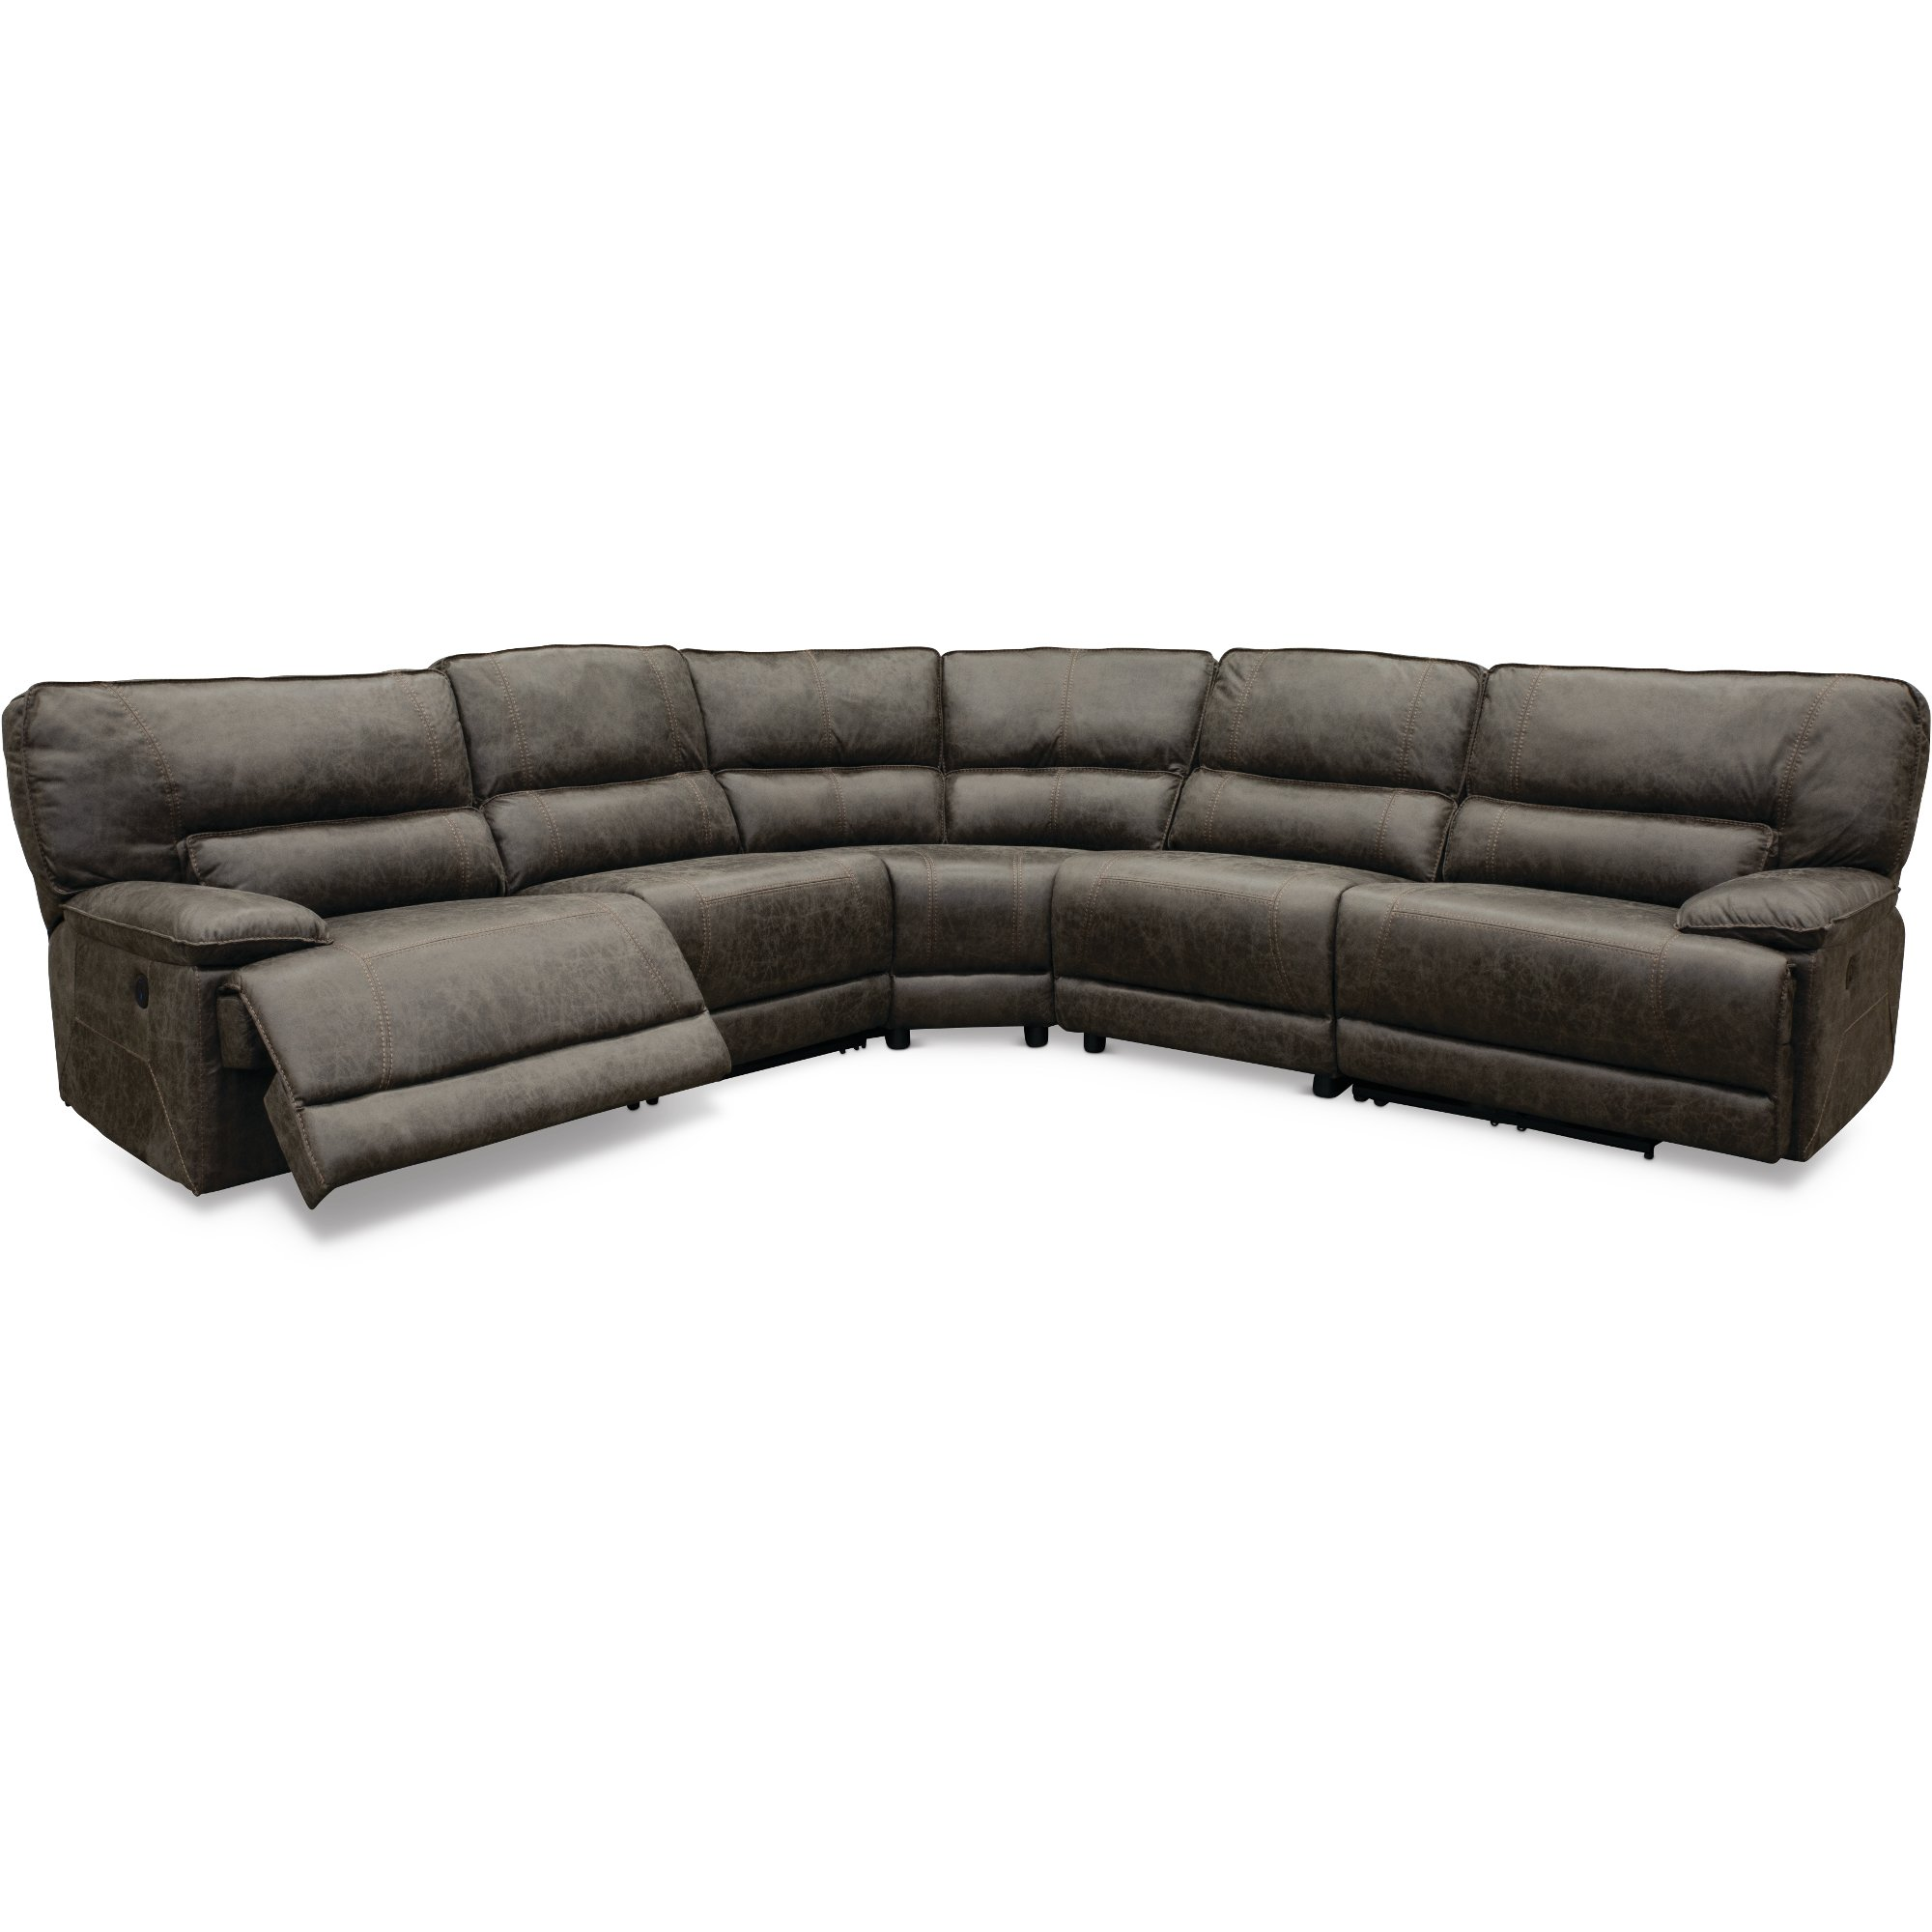 5 Piece Sectional Sofa With Recliner Galdierocostantino Com